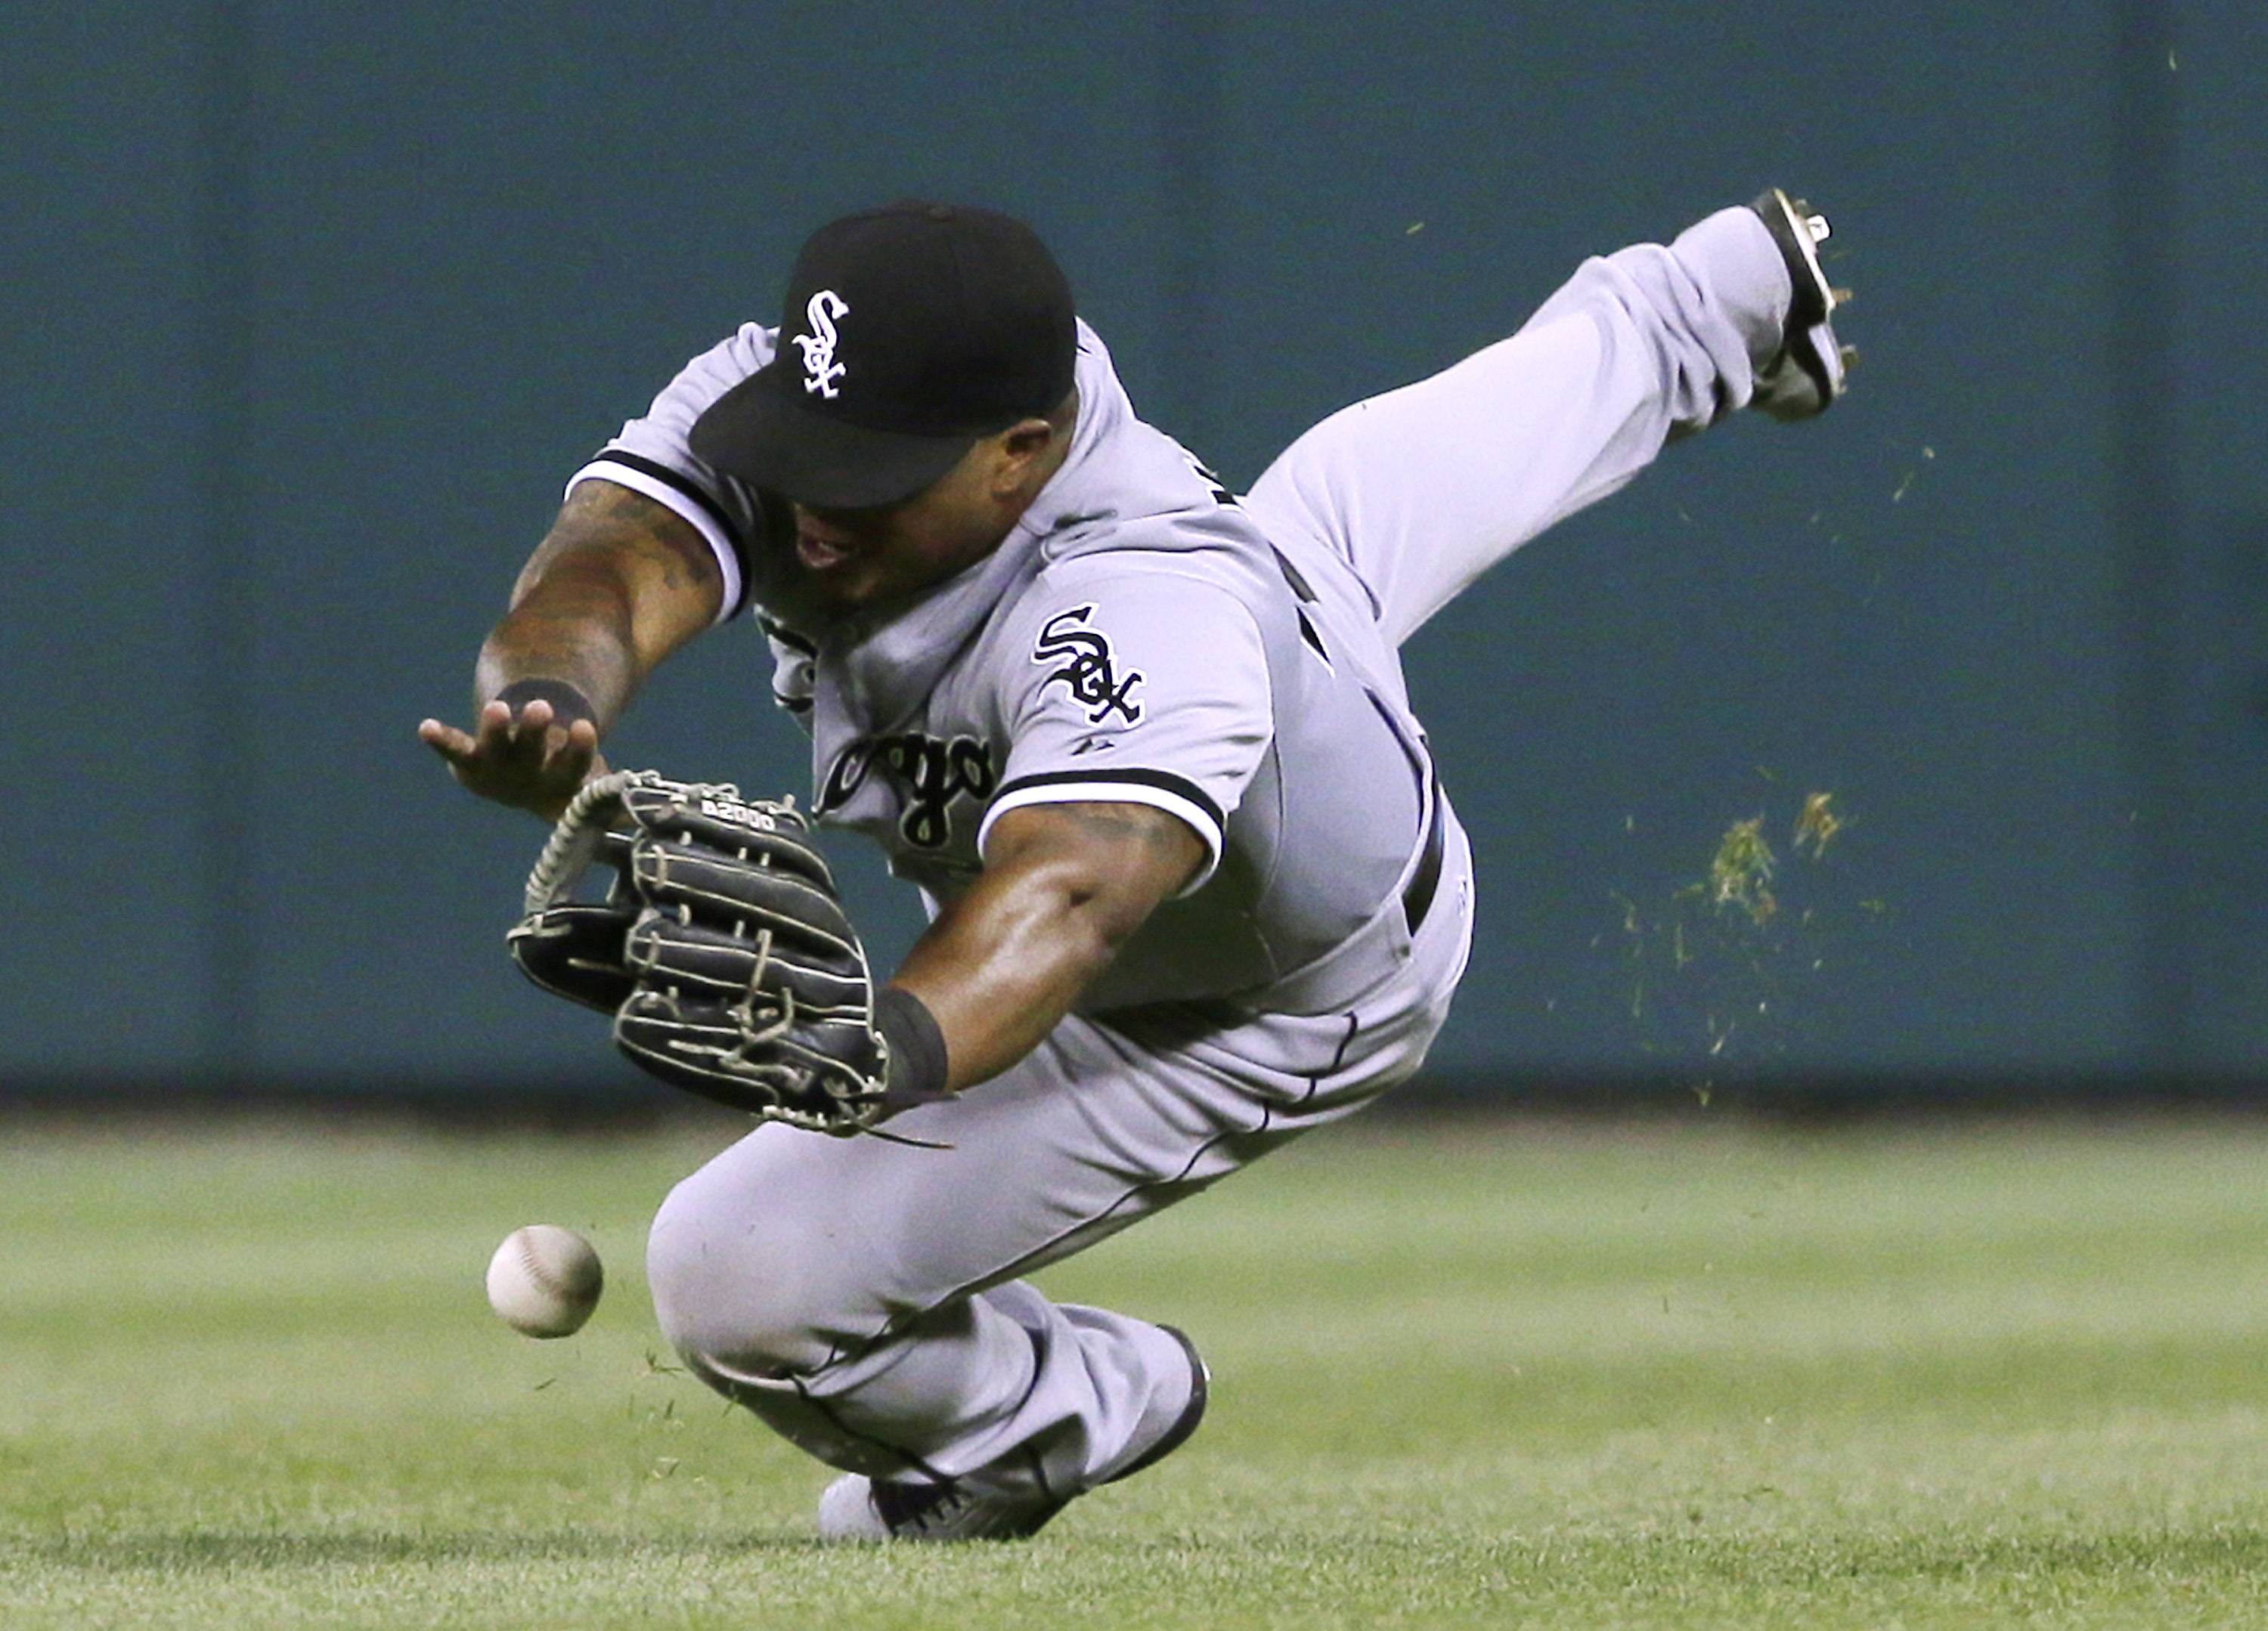 White Sox right fielder Dayan Viciedo cannot catch a double hit by the Tigers' Torii Hunter in the eighth inning Tuesday